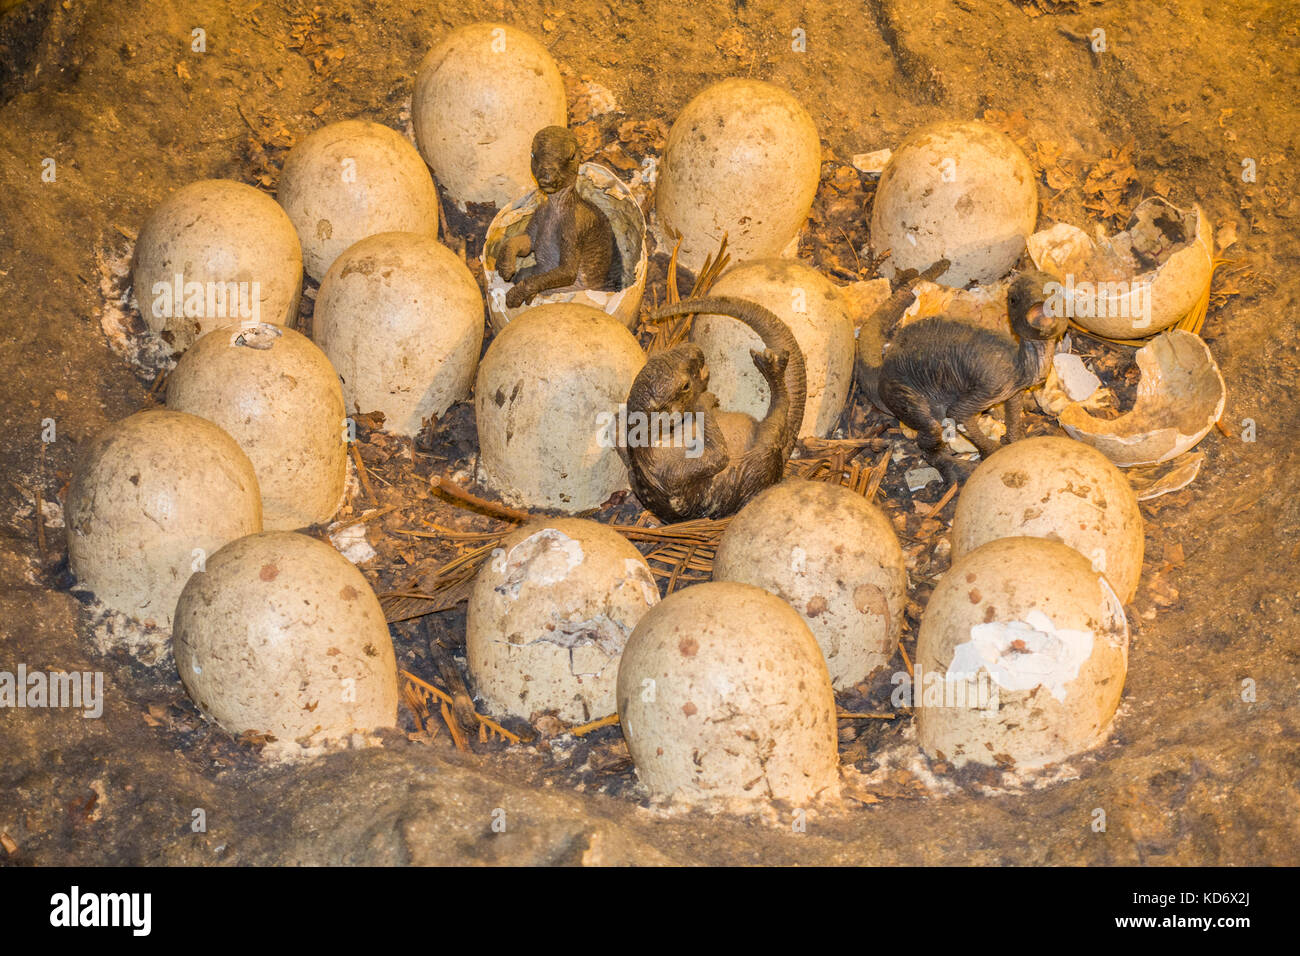 A realistic mockup / replication of dinosaur eggs hatching in a nest at the Natural History Museum, Kensington, - Stock Image